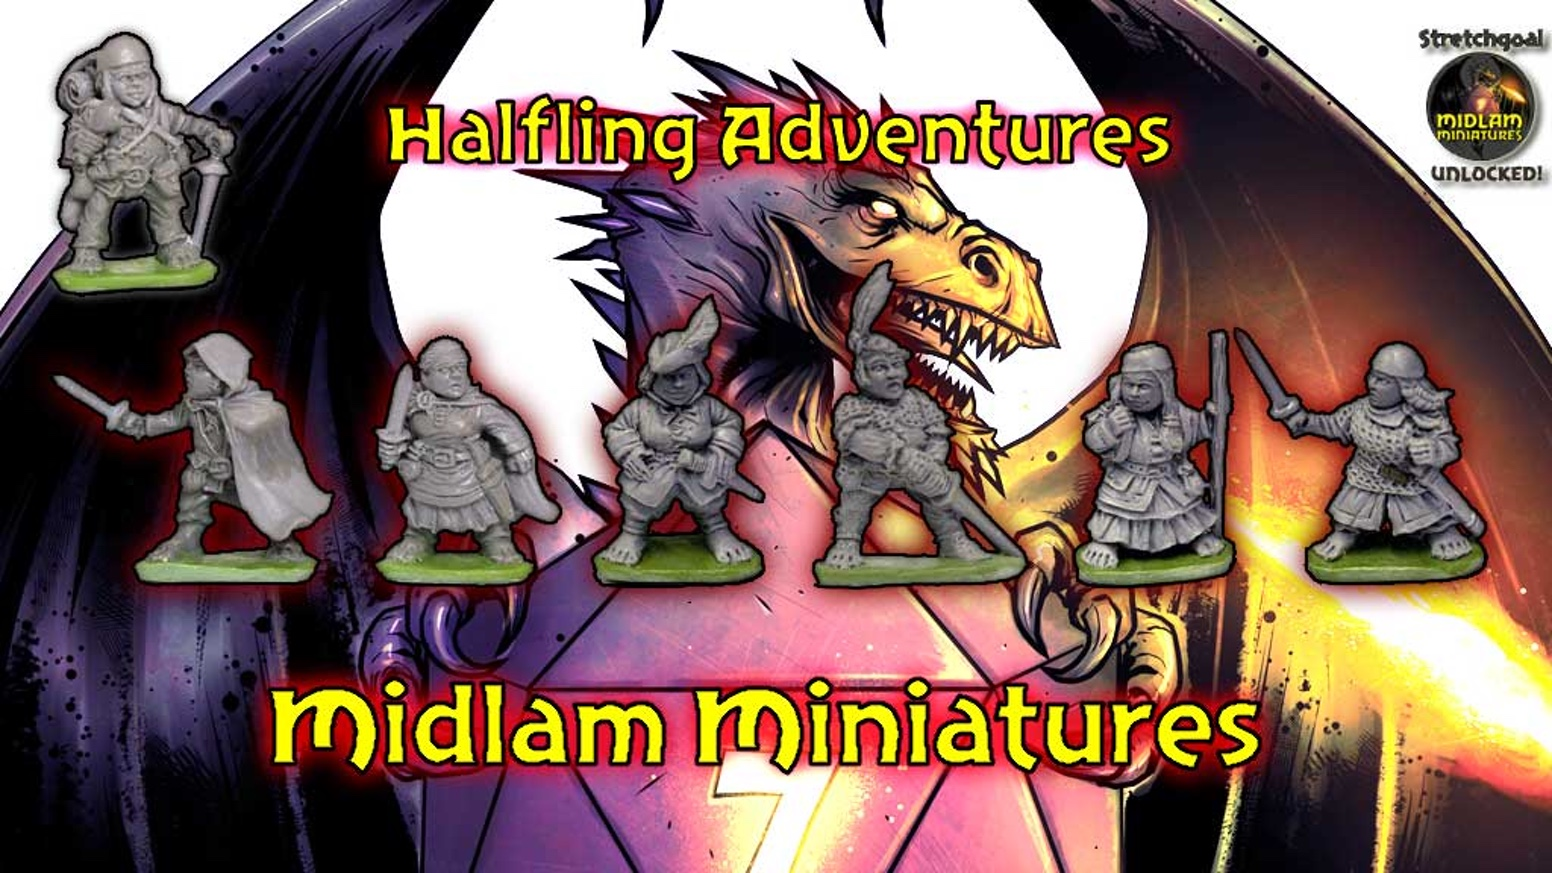 Midlam_Miniatures_Halfling_Adventures